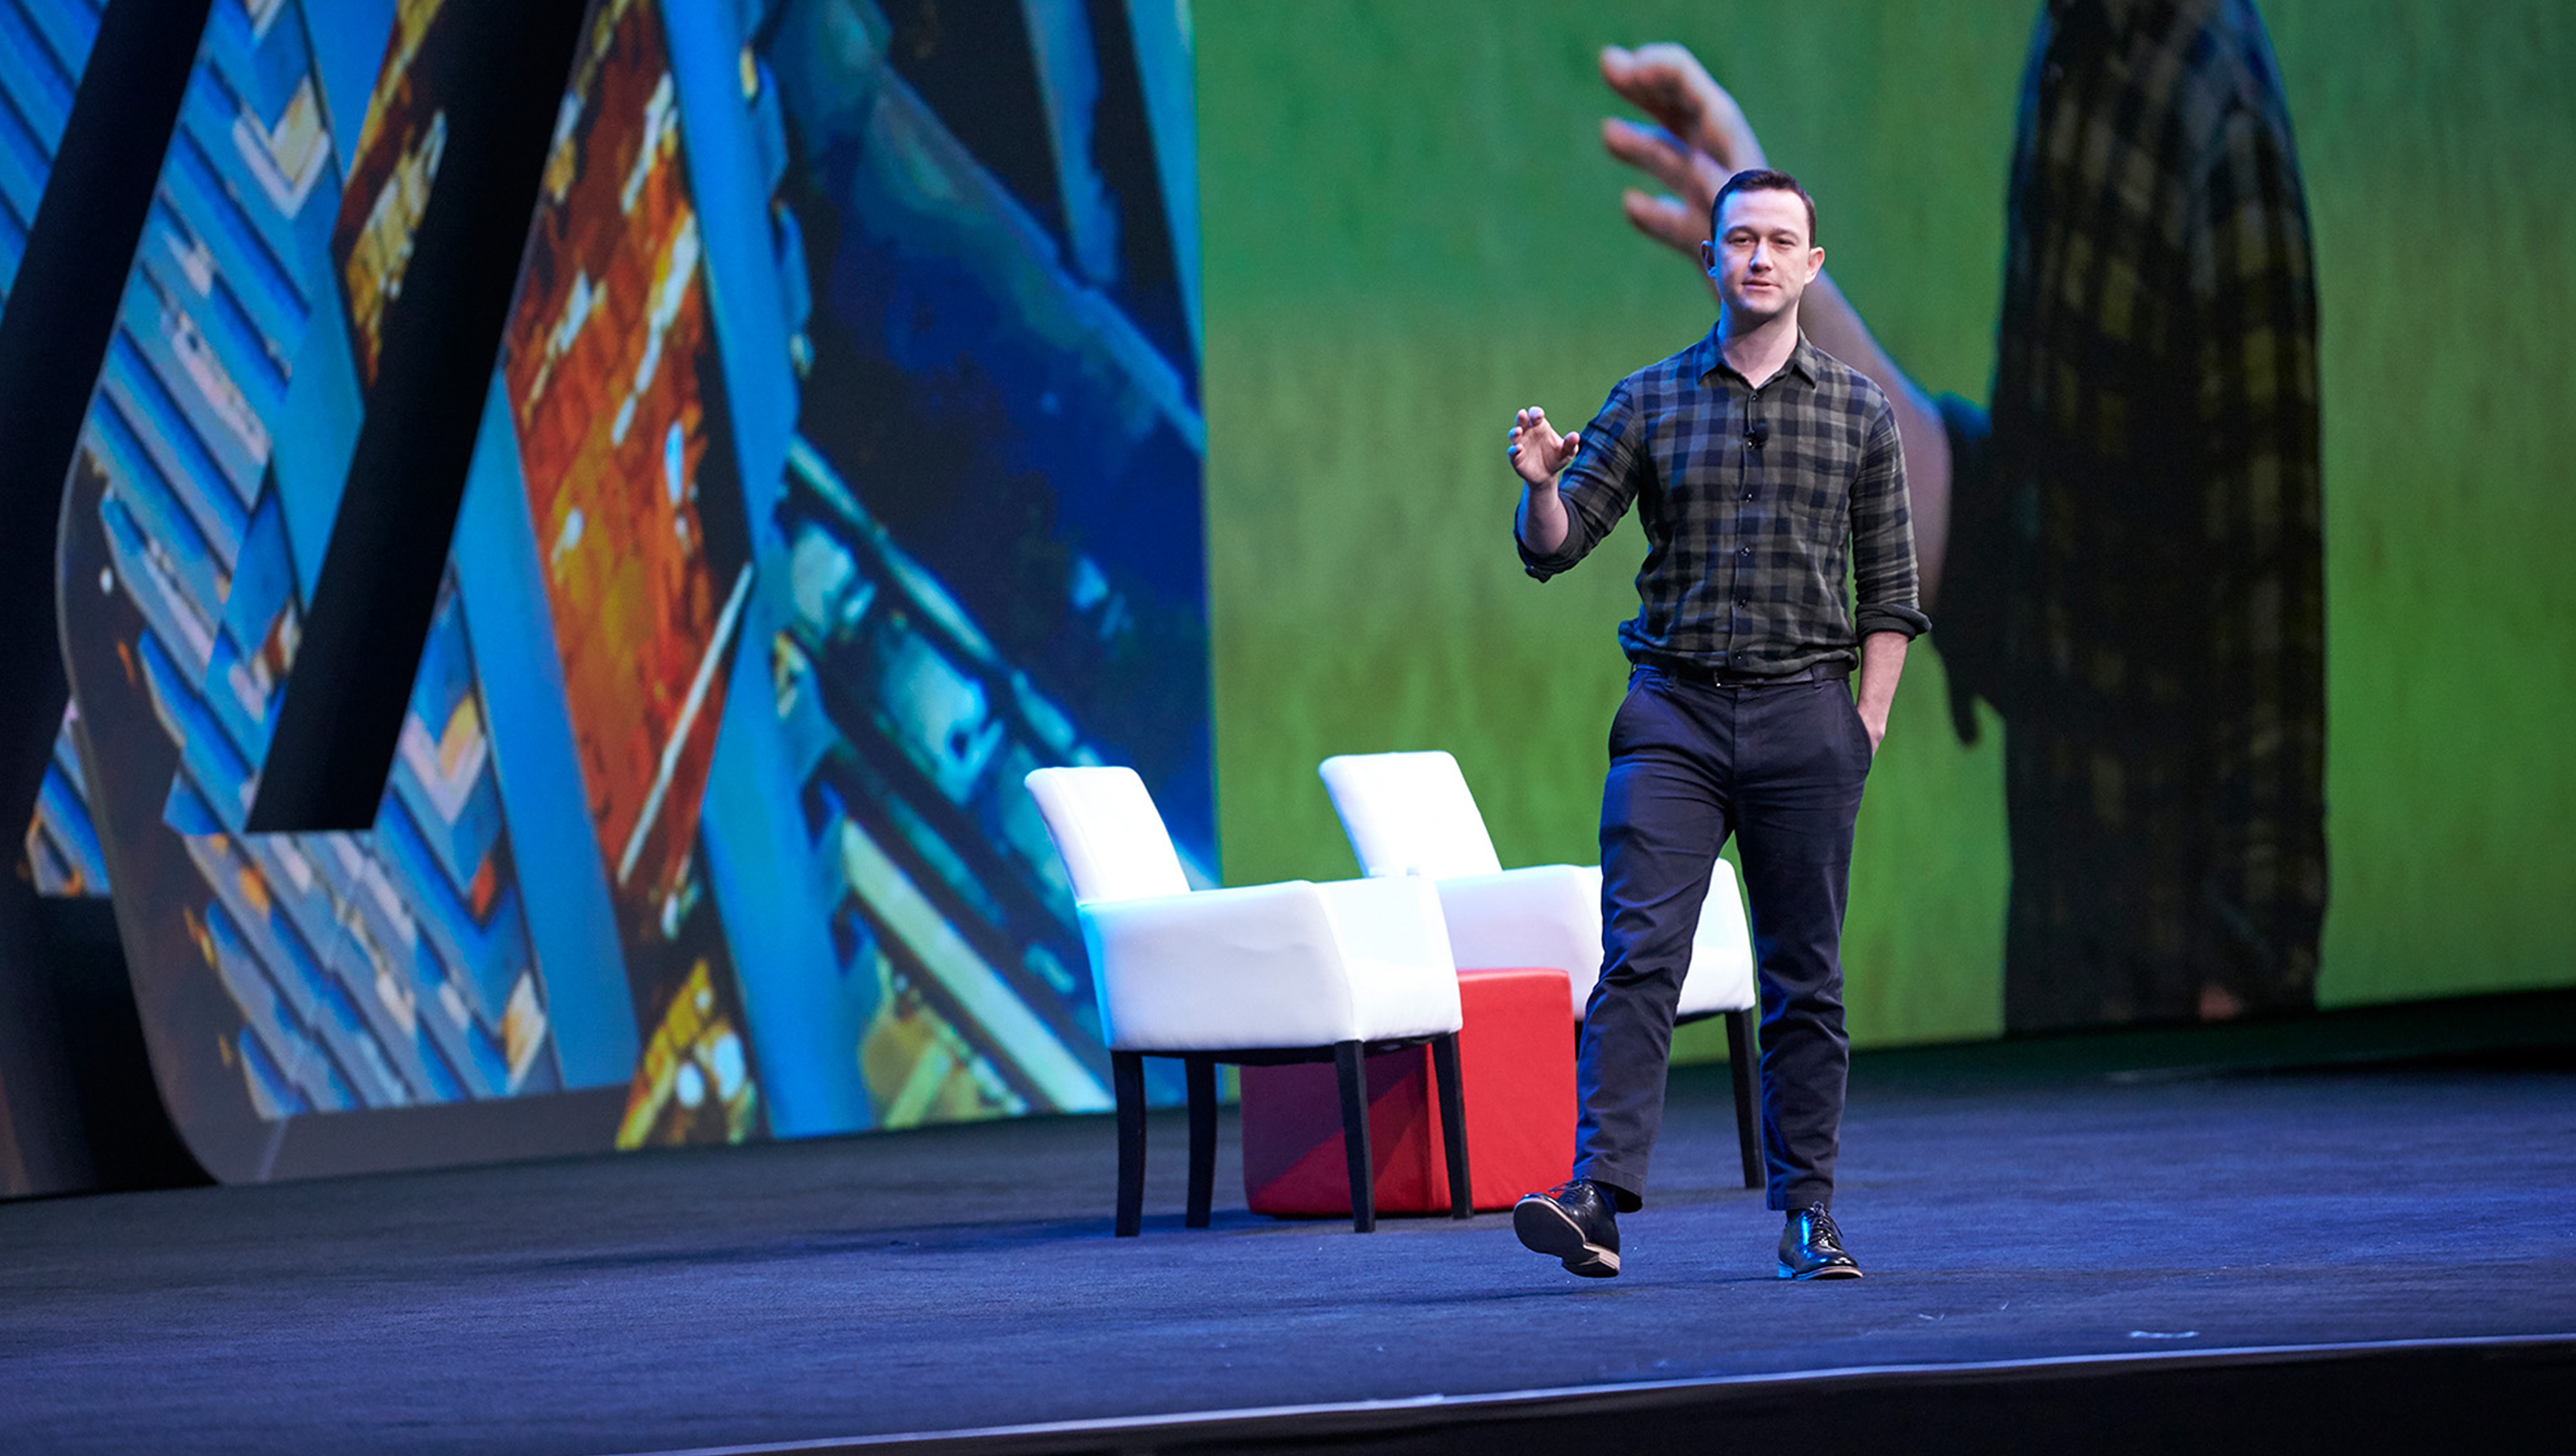 What happened at Oracle's Markie Awards last year?